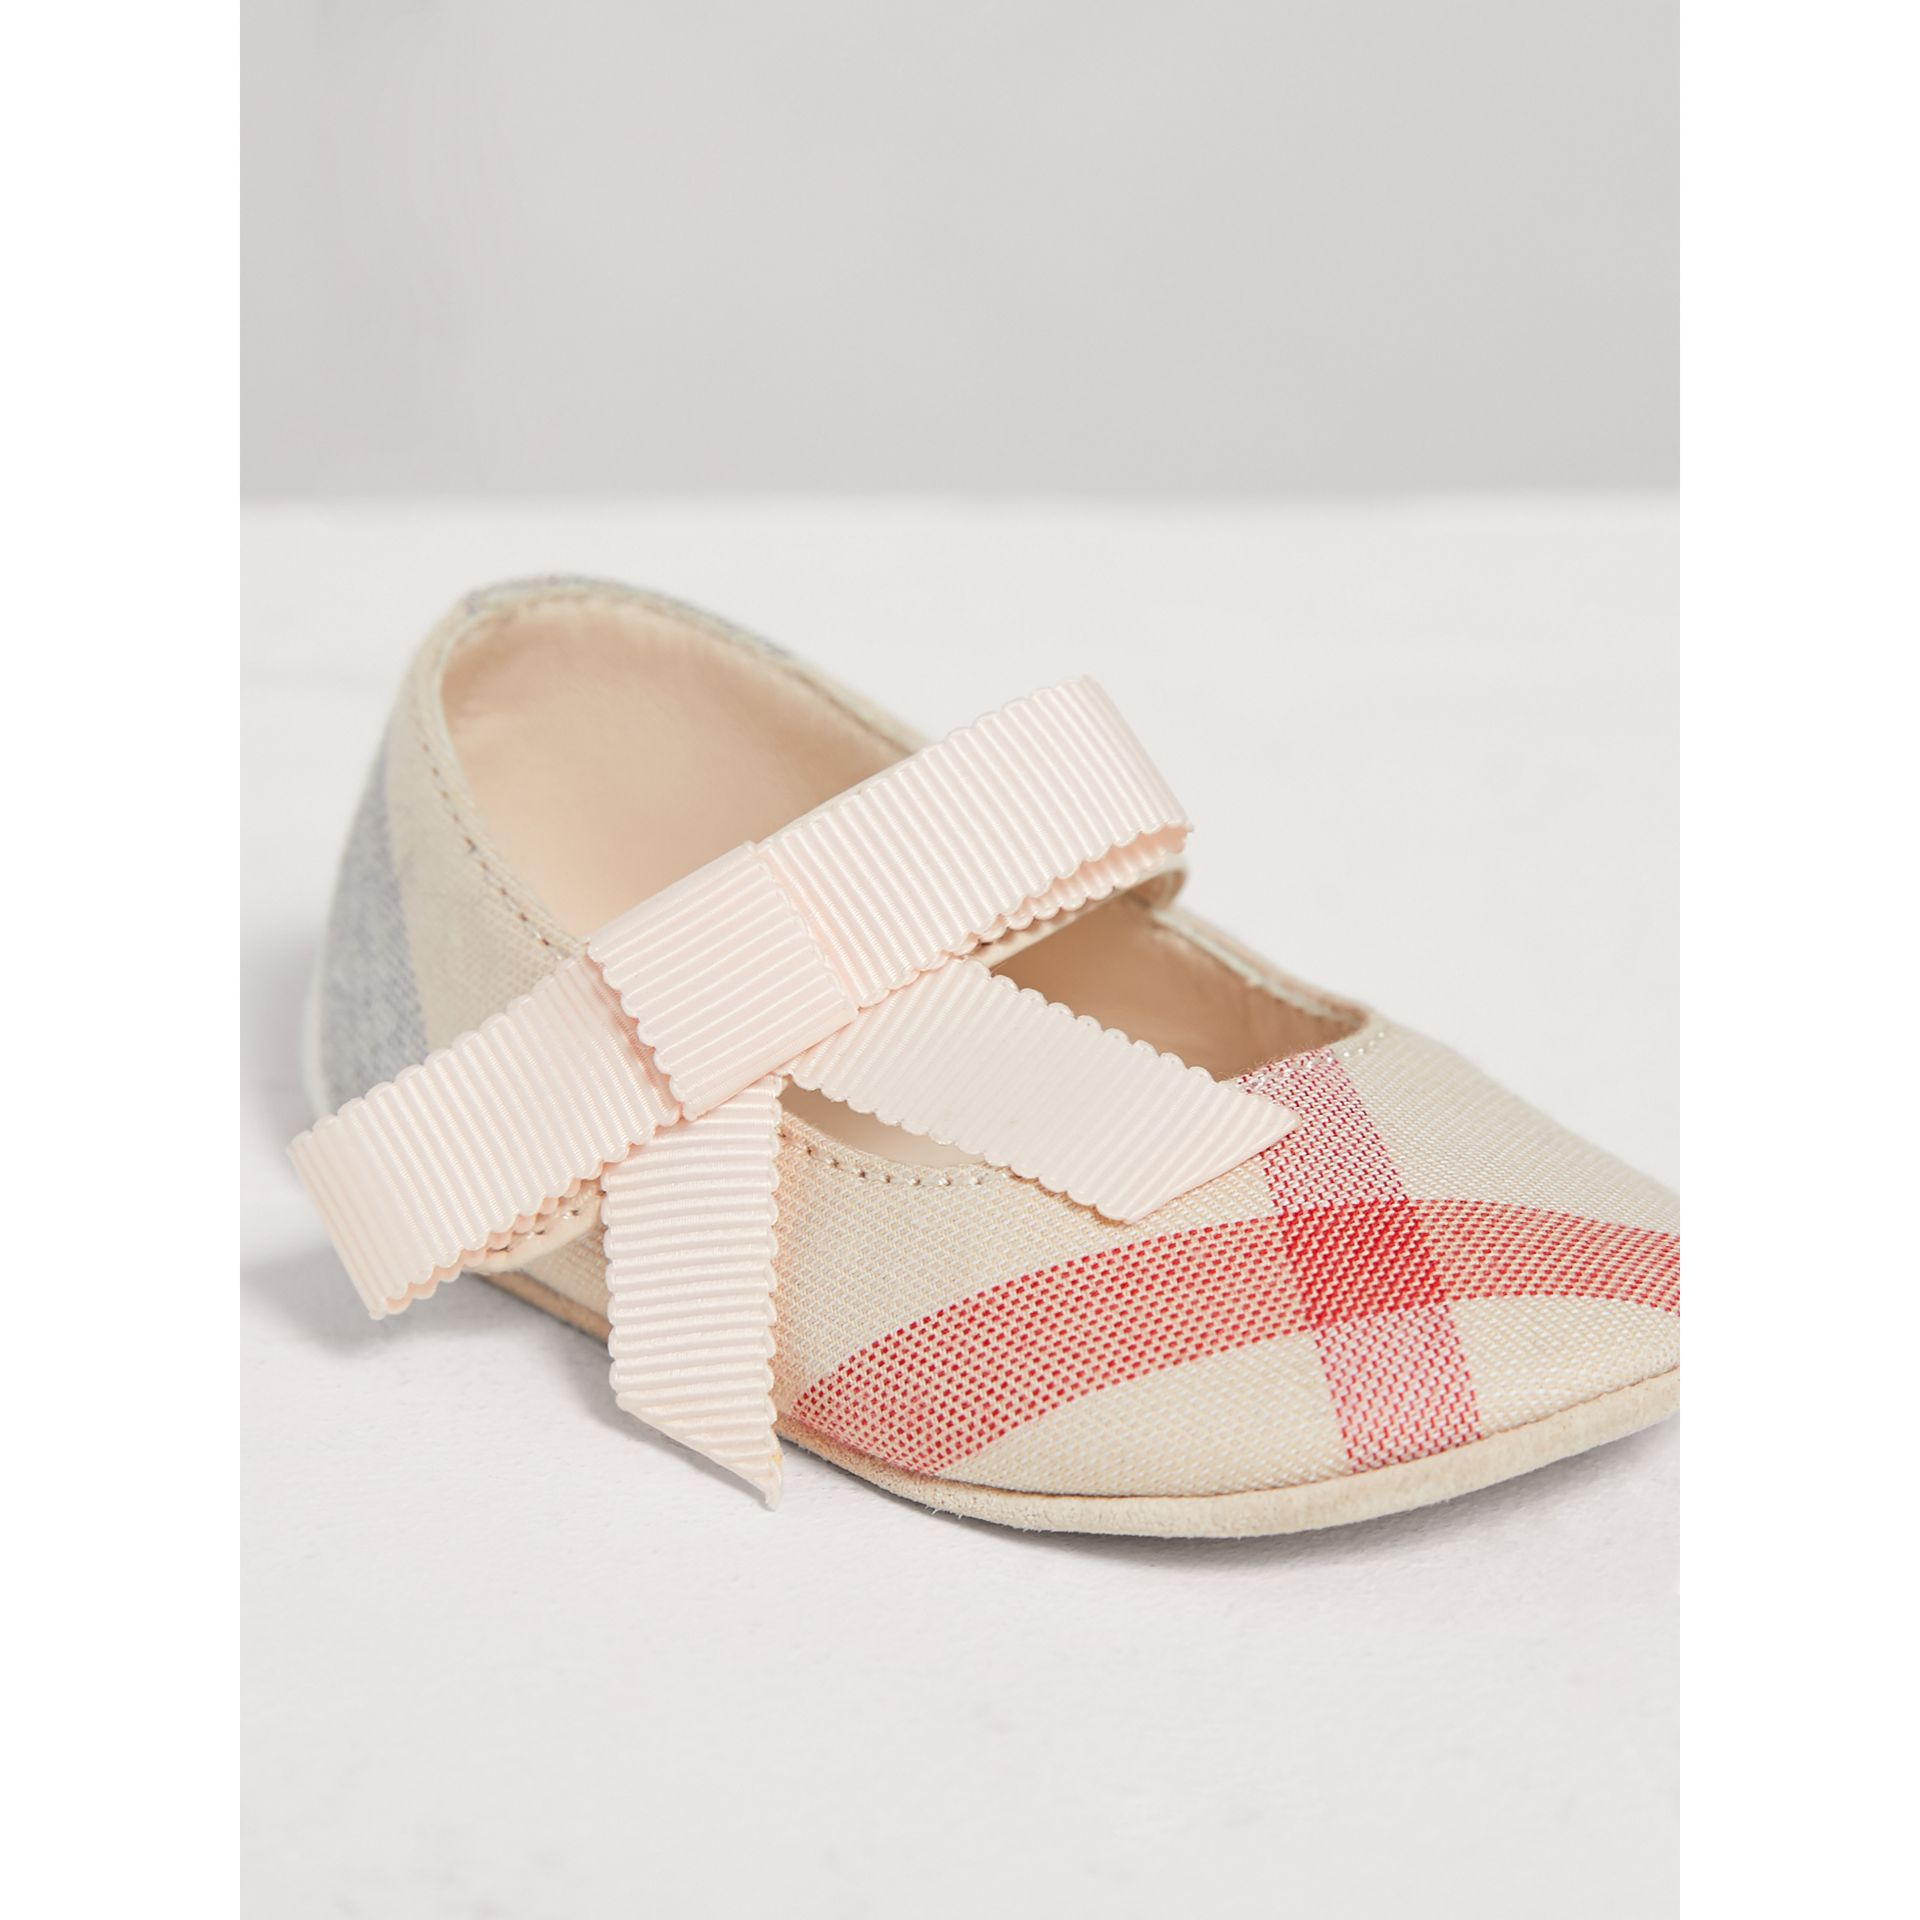 Bow Detail Check Cotton and Leather Ballerinas in Pale Classic - Children | Burberry - gallery image 3